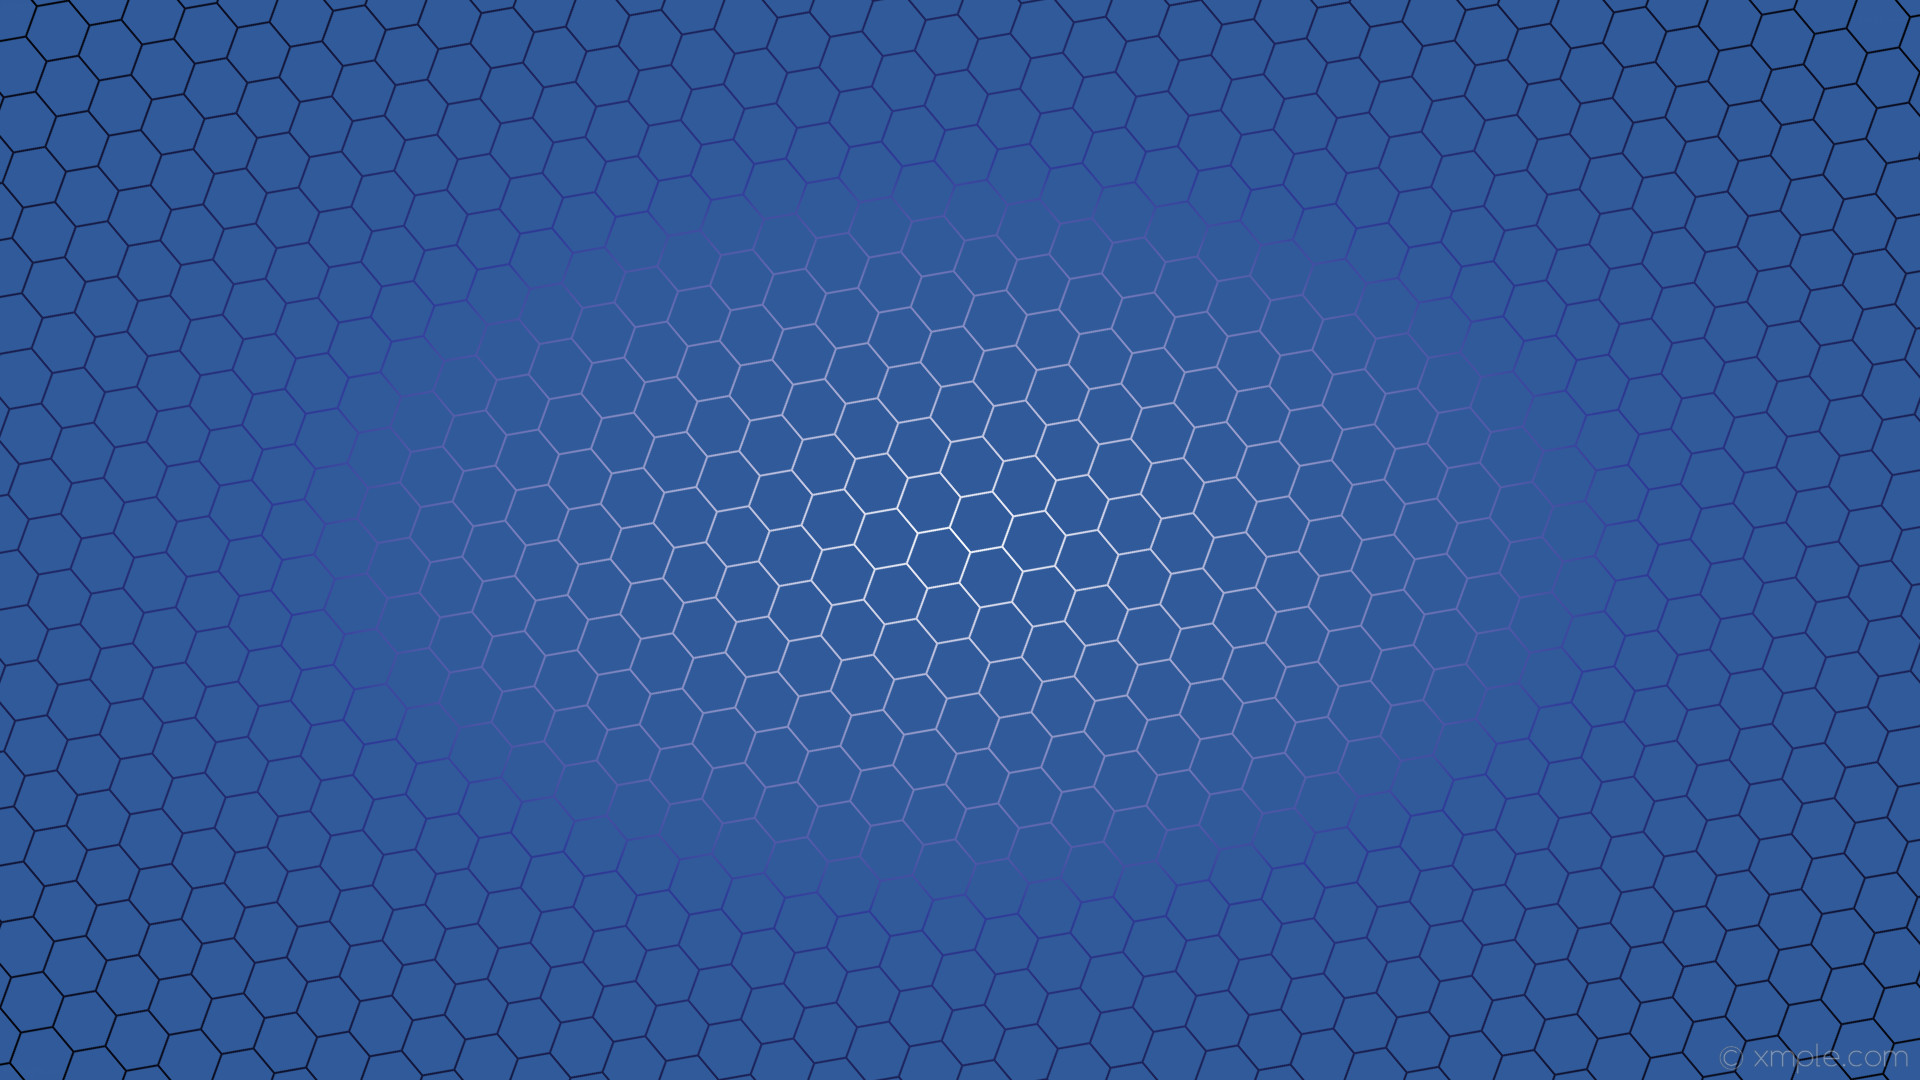 1920x1080 wallpaper black blue hexagon white azure glow gradient #305a99 #ffffff  #303a99 diagonal 40